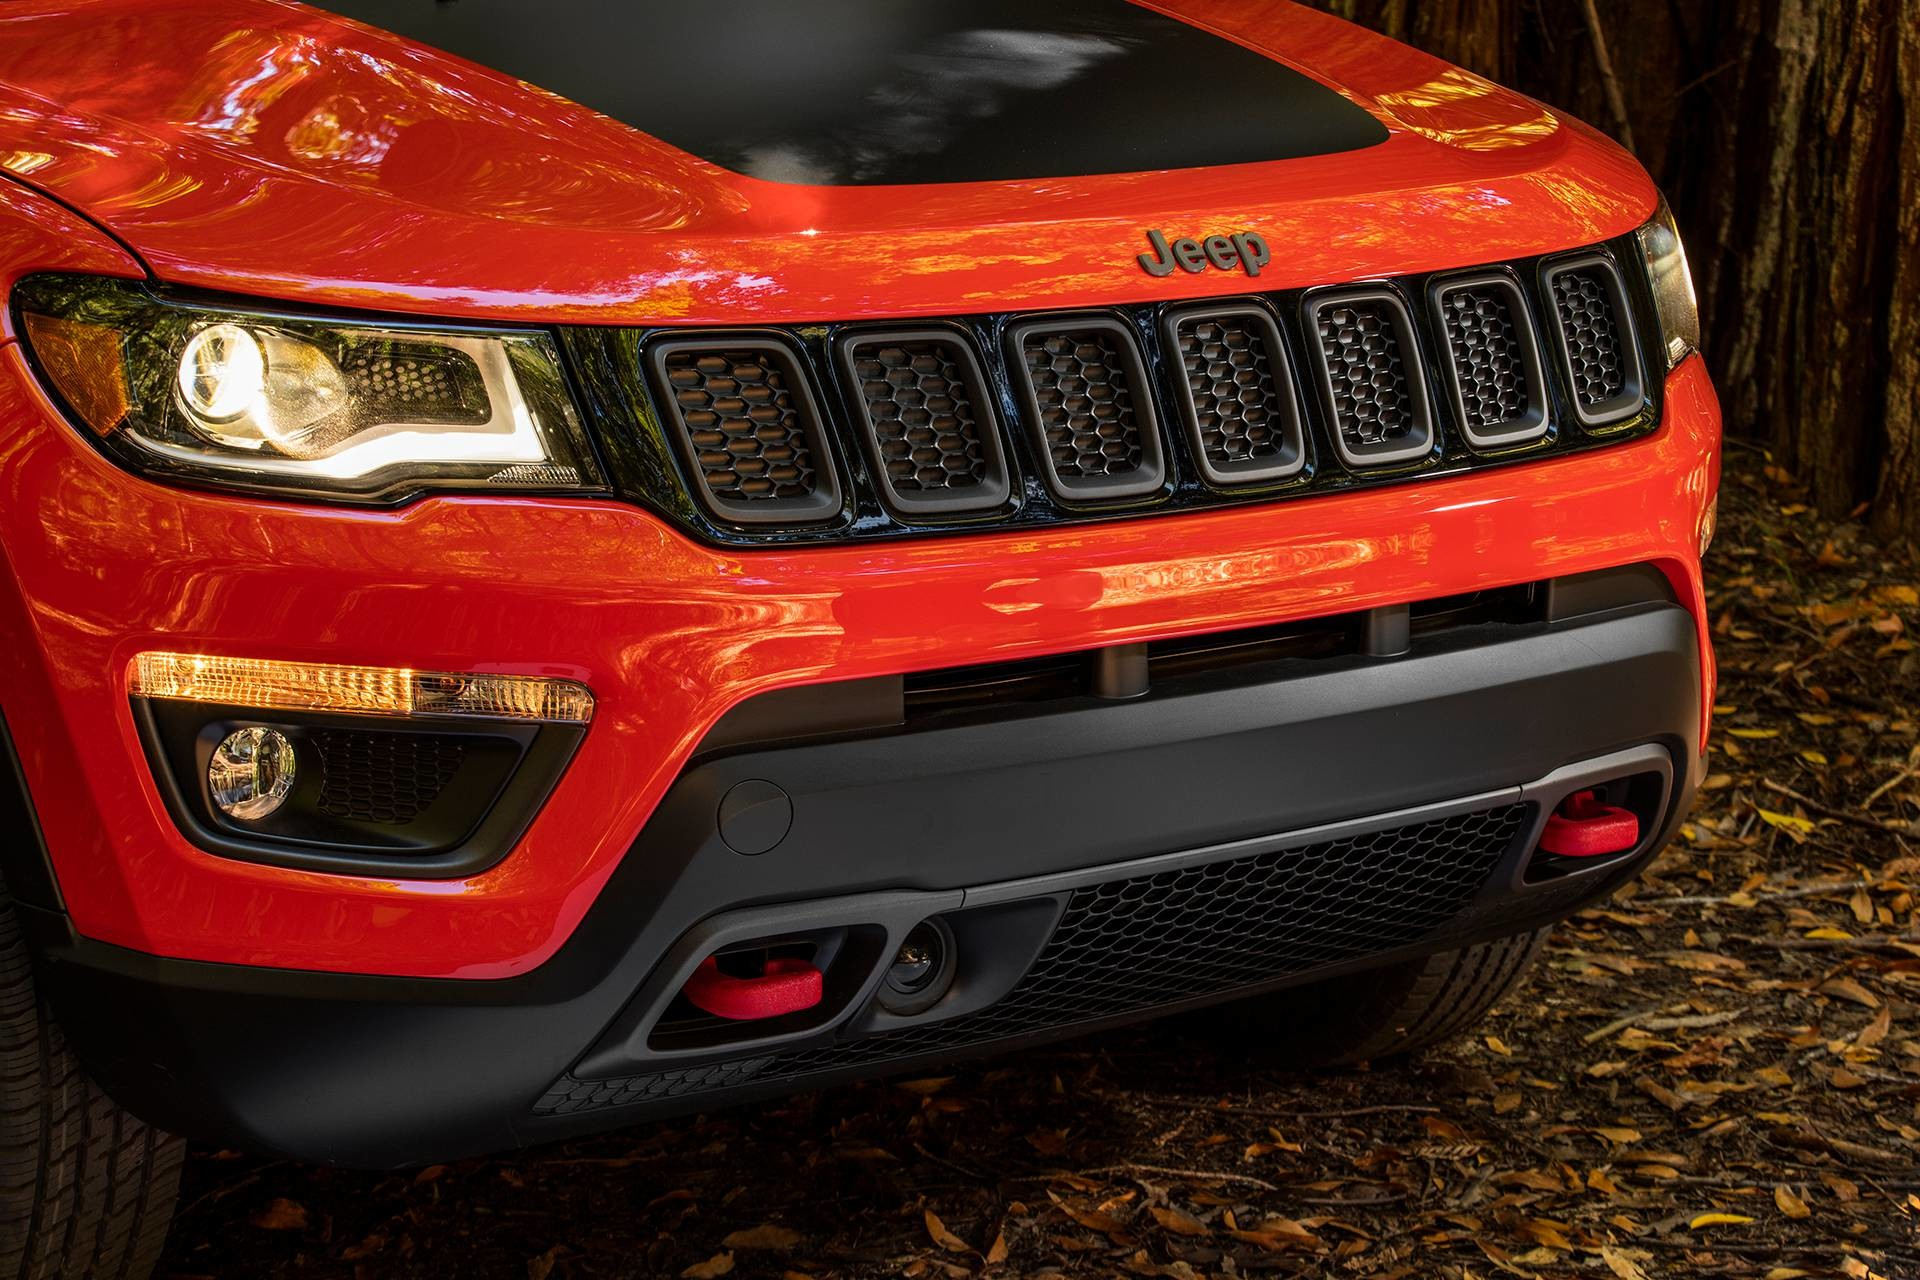 2019 Jeep Compass with red tow hooks